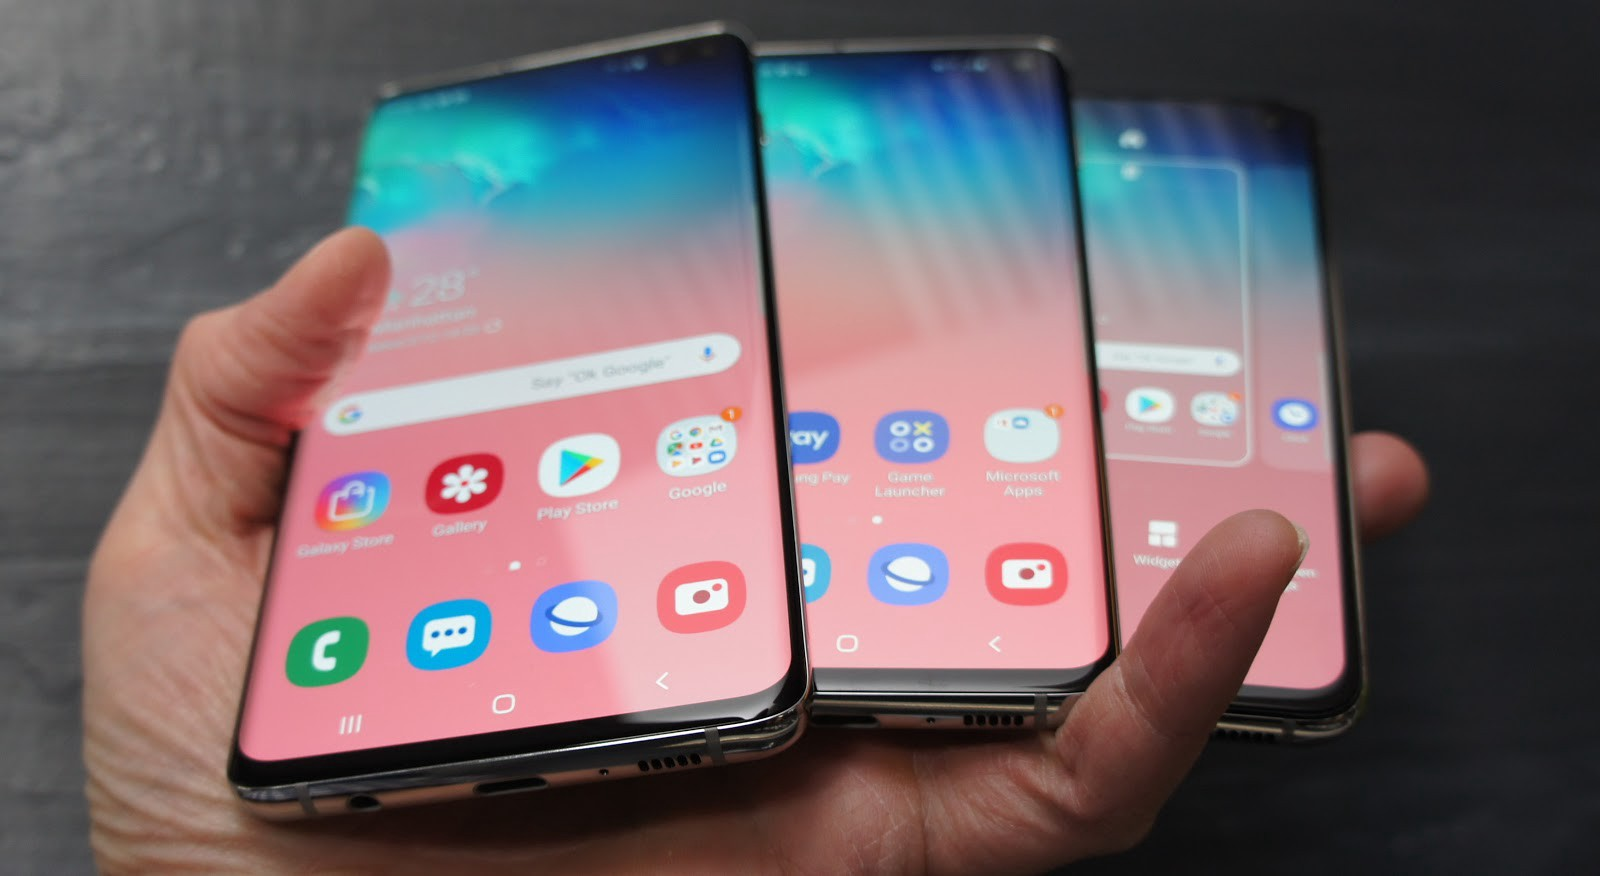 Samsung Galaxy S10 Hands-on: Giving the iPhone a Run for Its